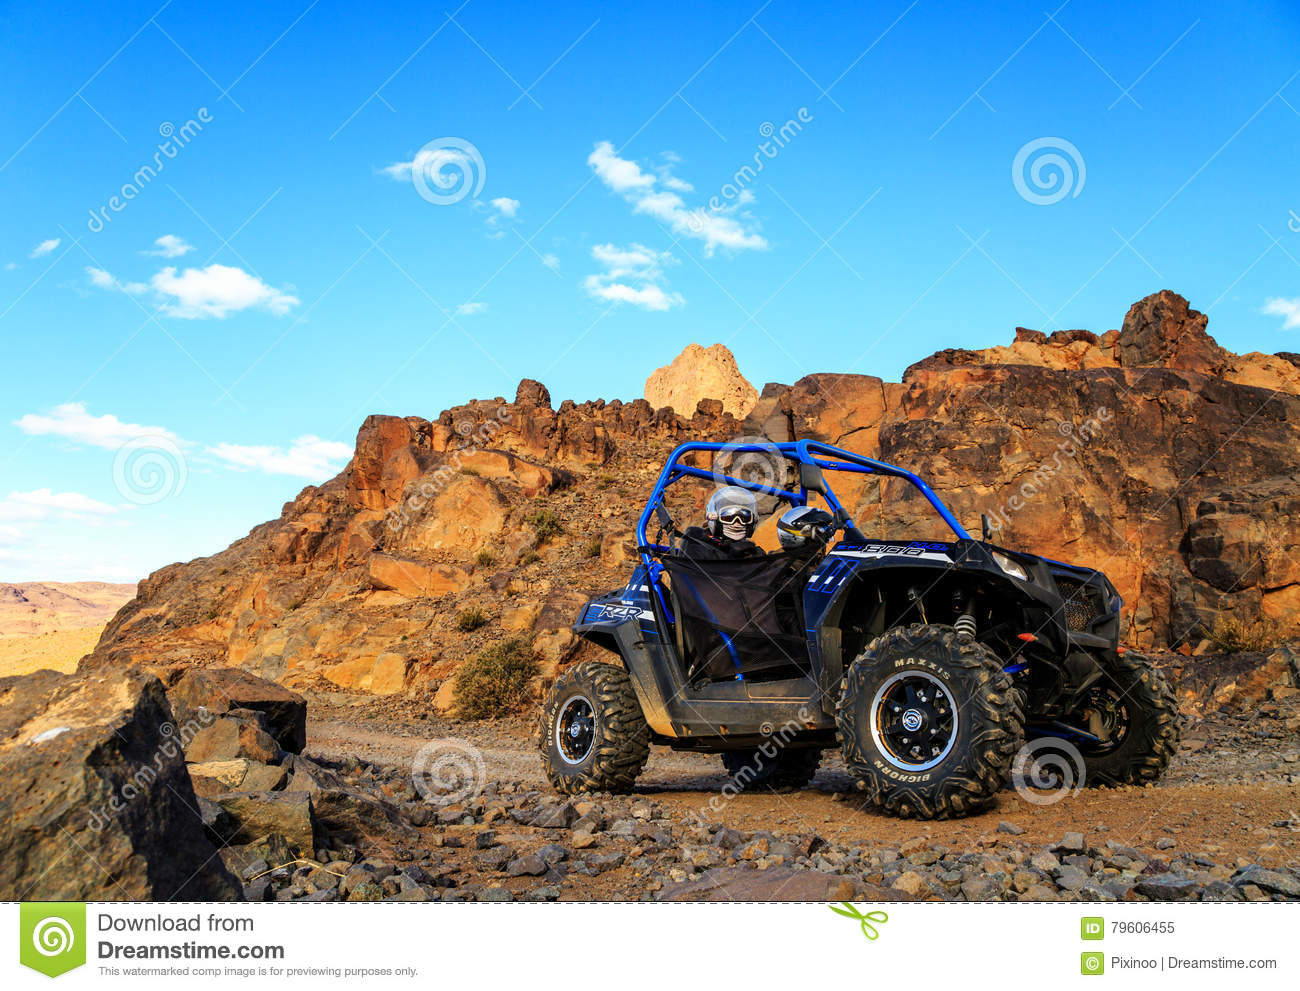 hight resolution of merzouga morocco feb 21 2016 blue polaris rzr 800 crossing a mountain road in the moroccan desert near merzouga merzouga is famous for its dunes